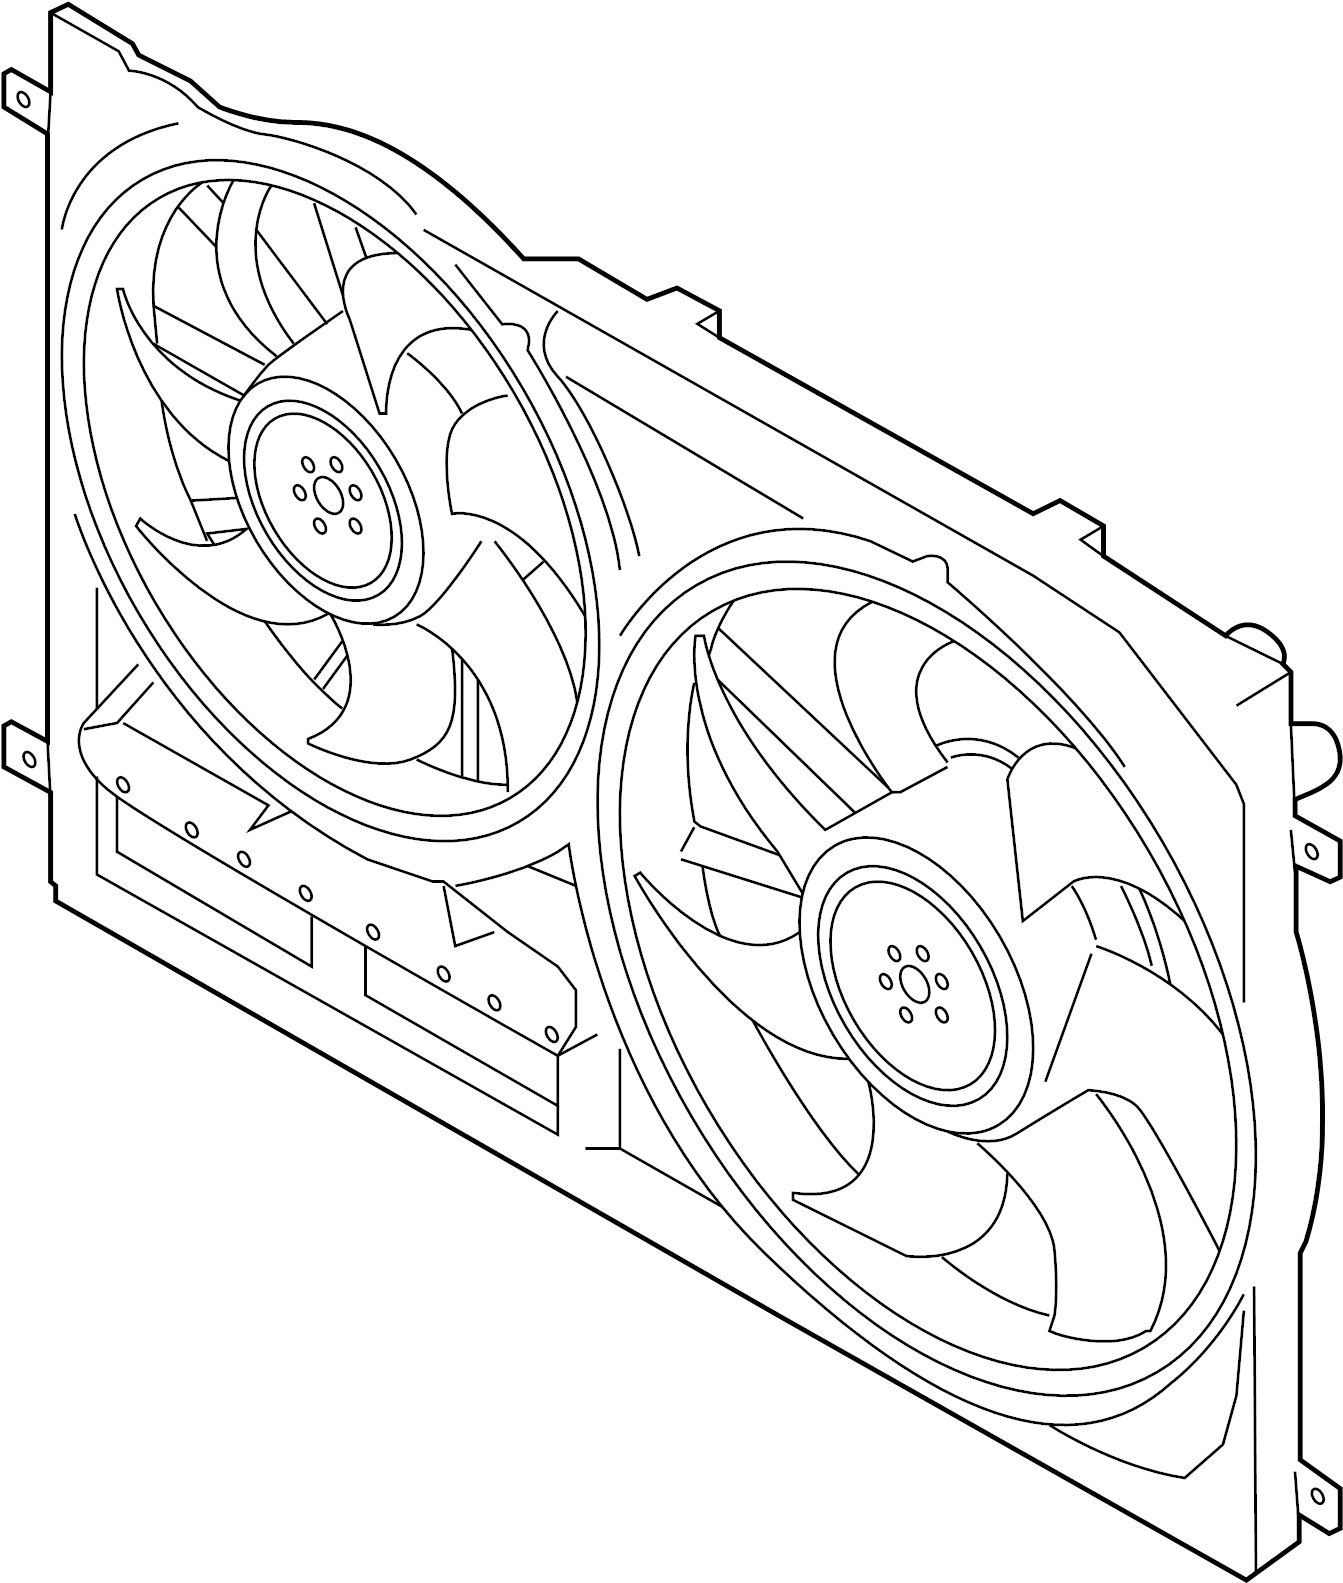 Ford Transit 350 Fan And Motor Motor And Fan Assembly